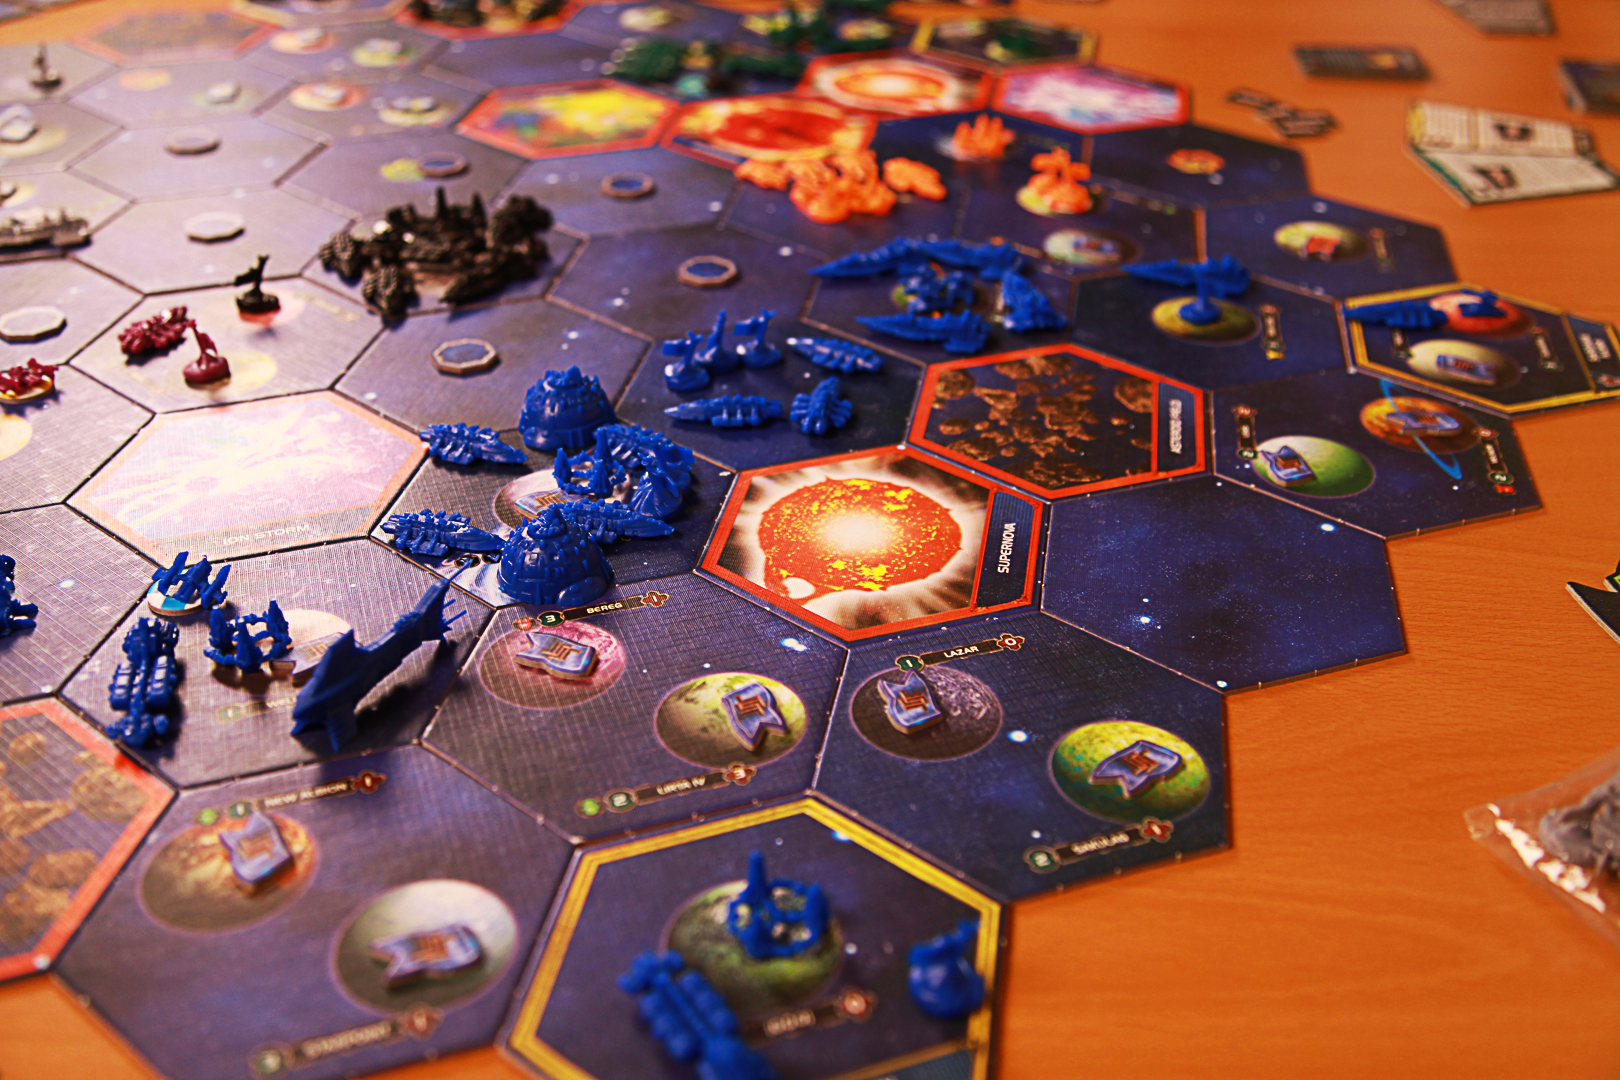 The Mindnet's powerful fleets form an imposing defensive line.